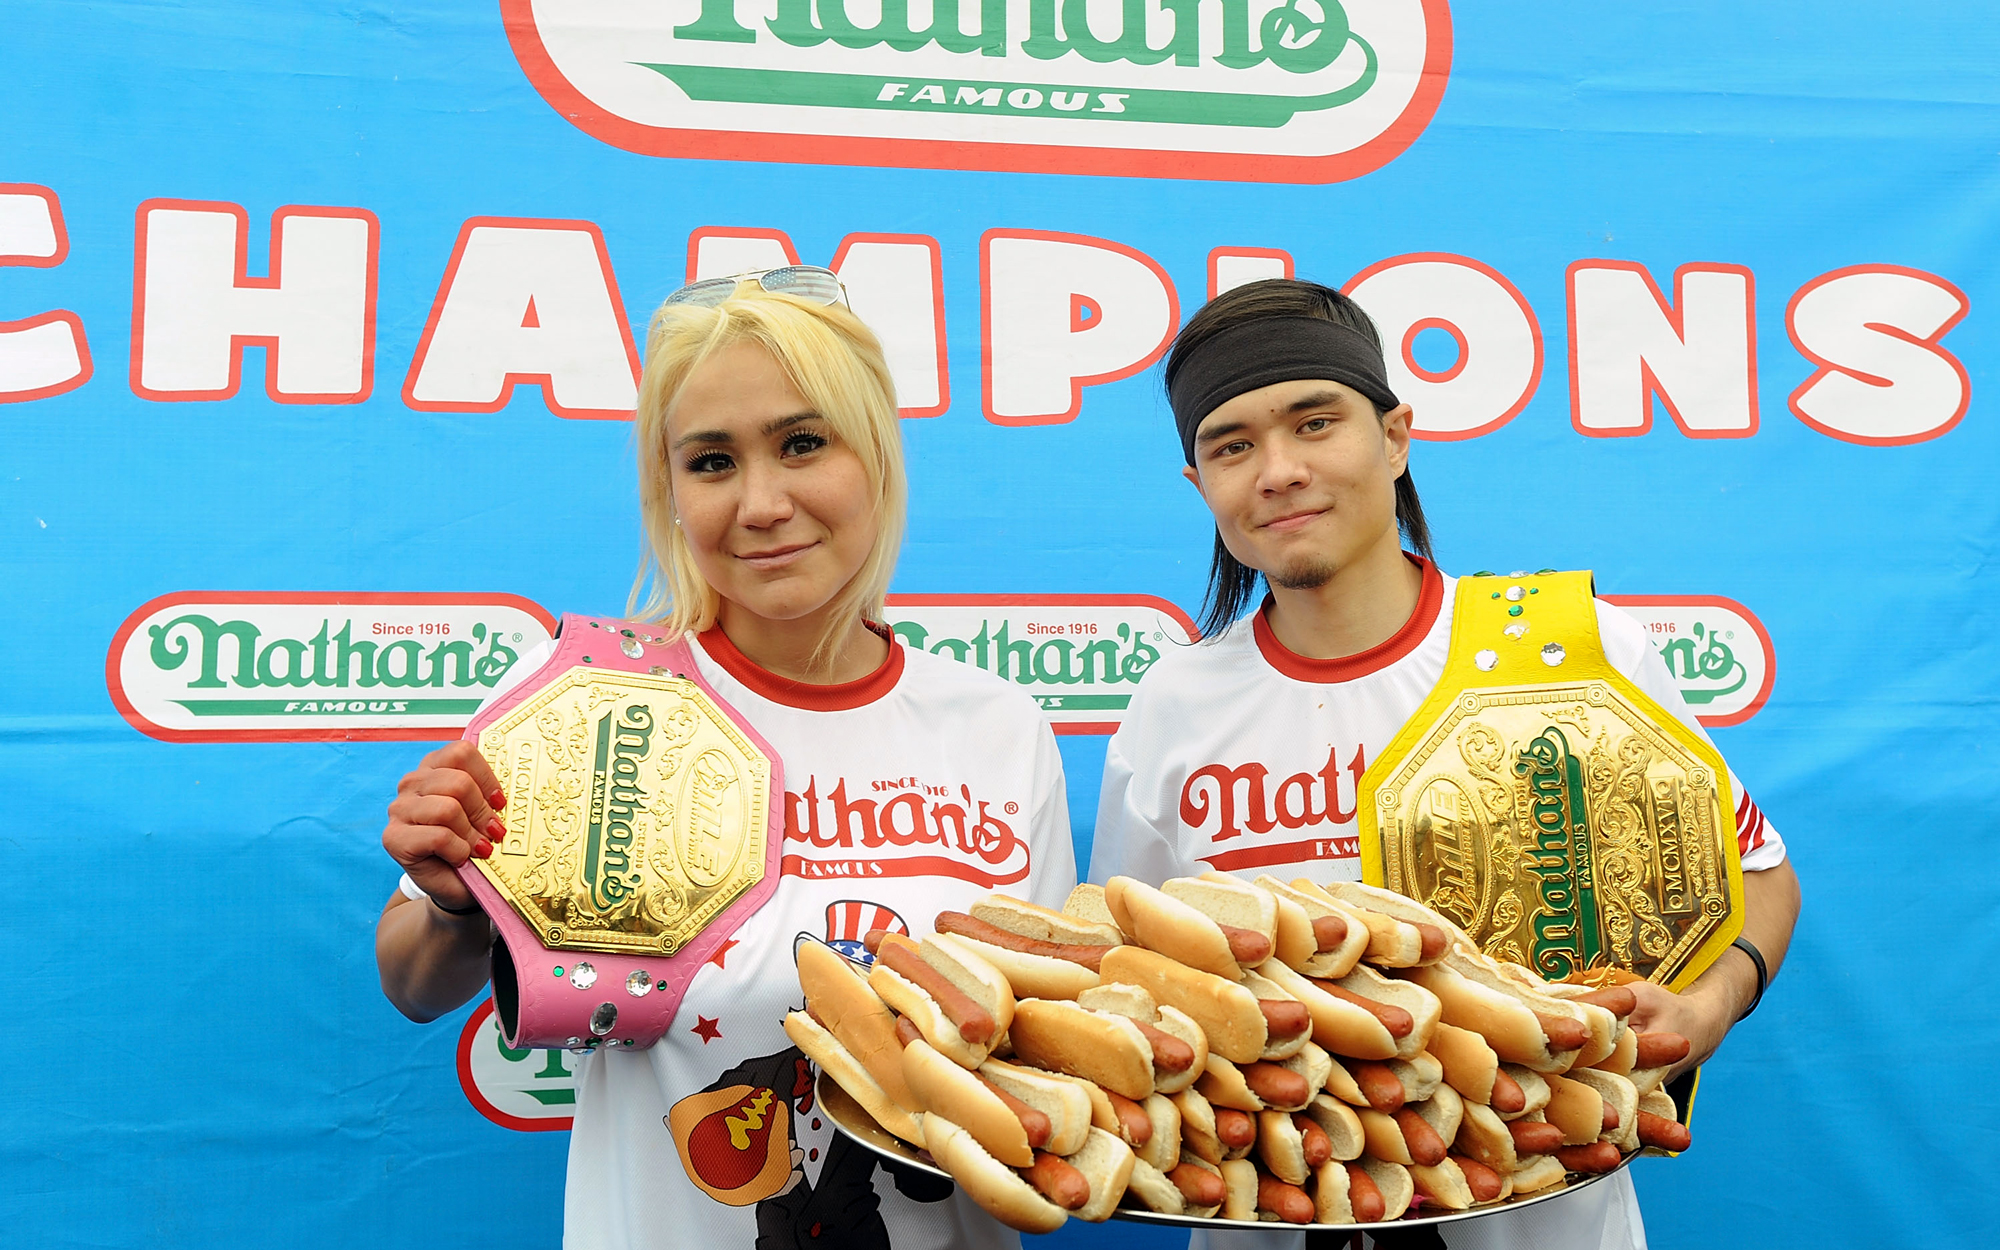 What it's like traveling to compete in a hot dog eating contest